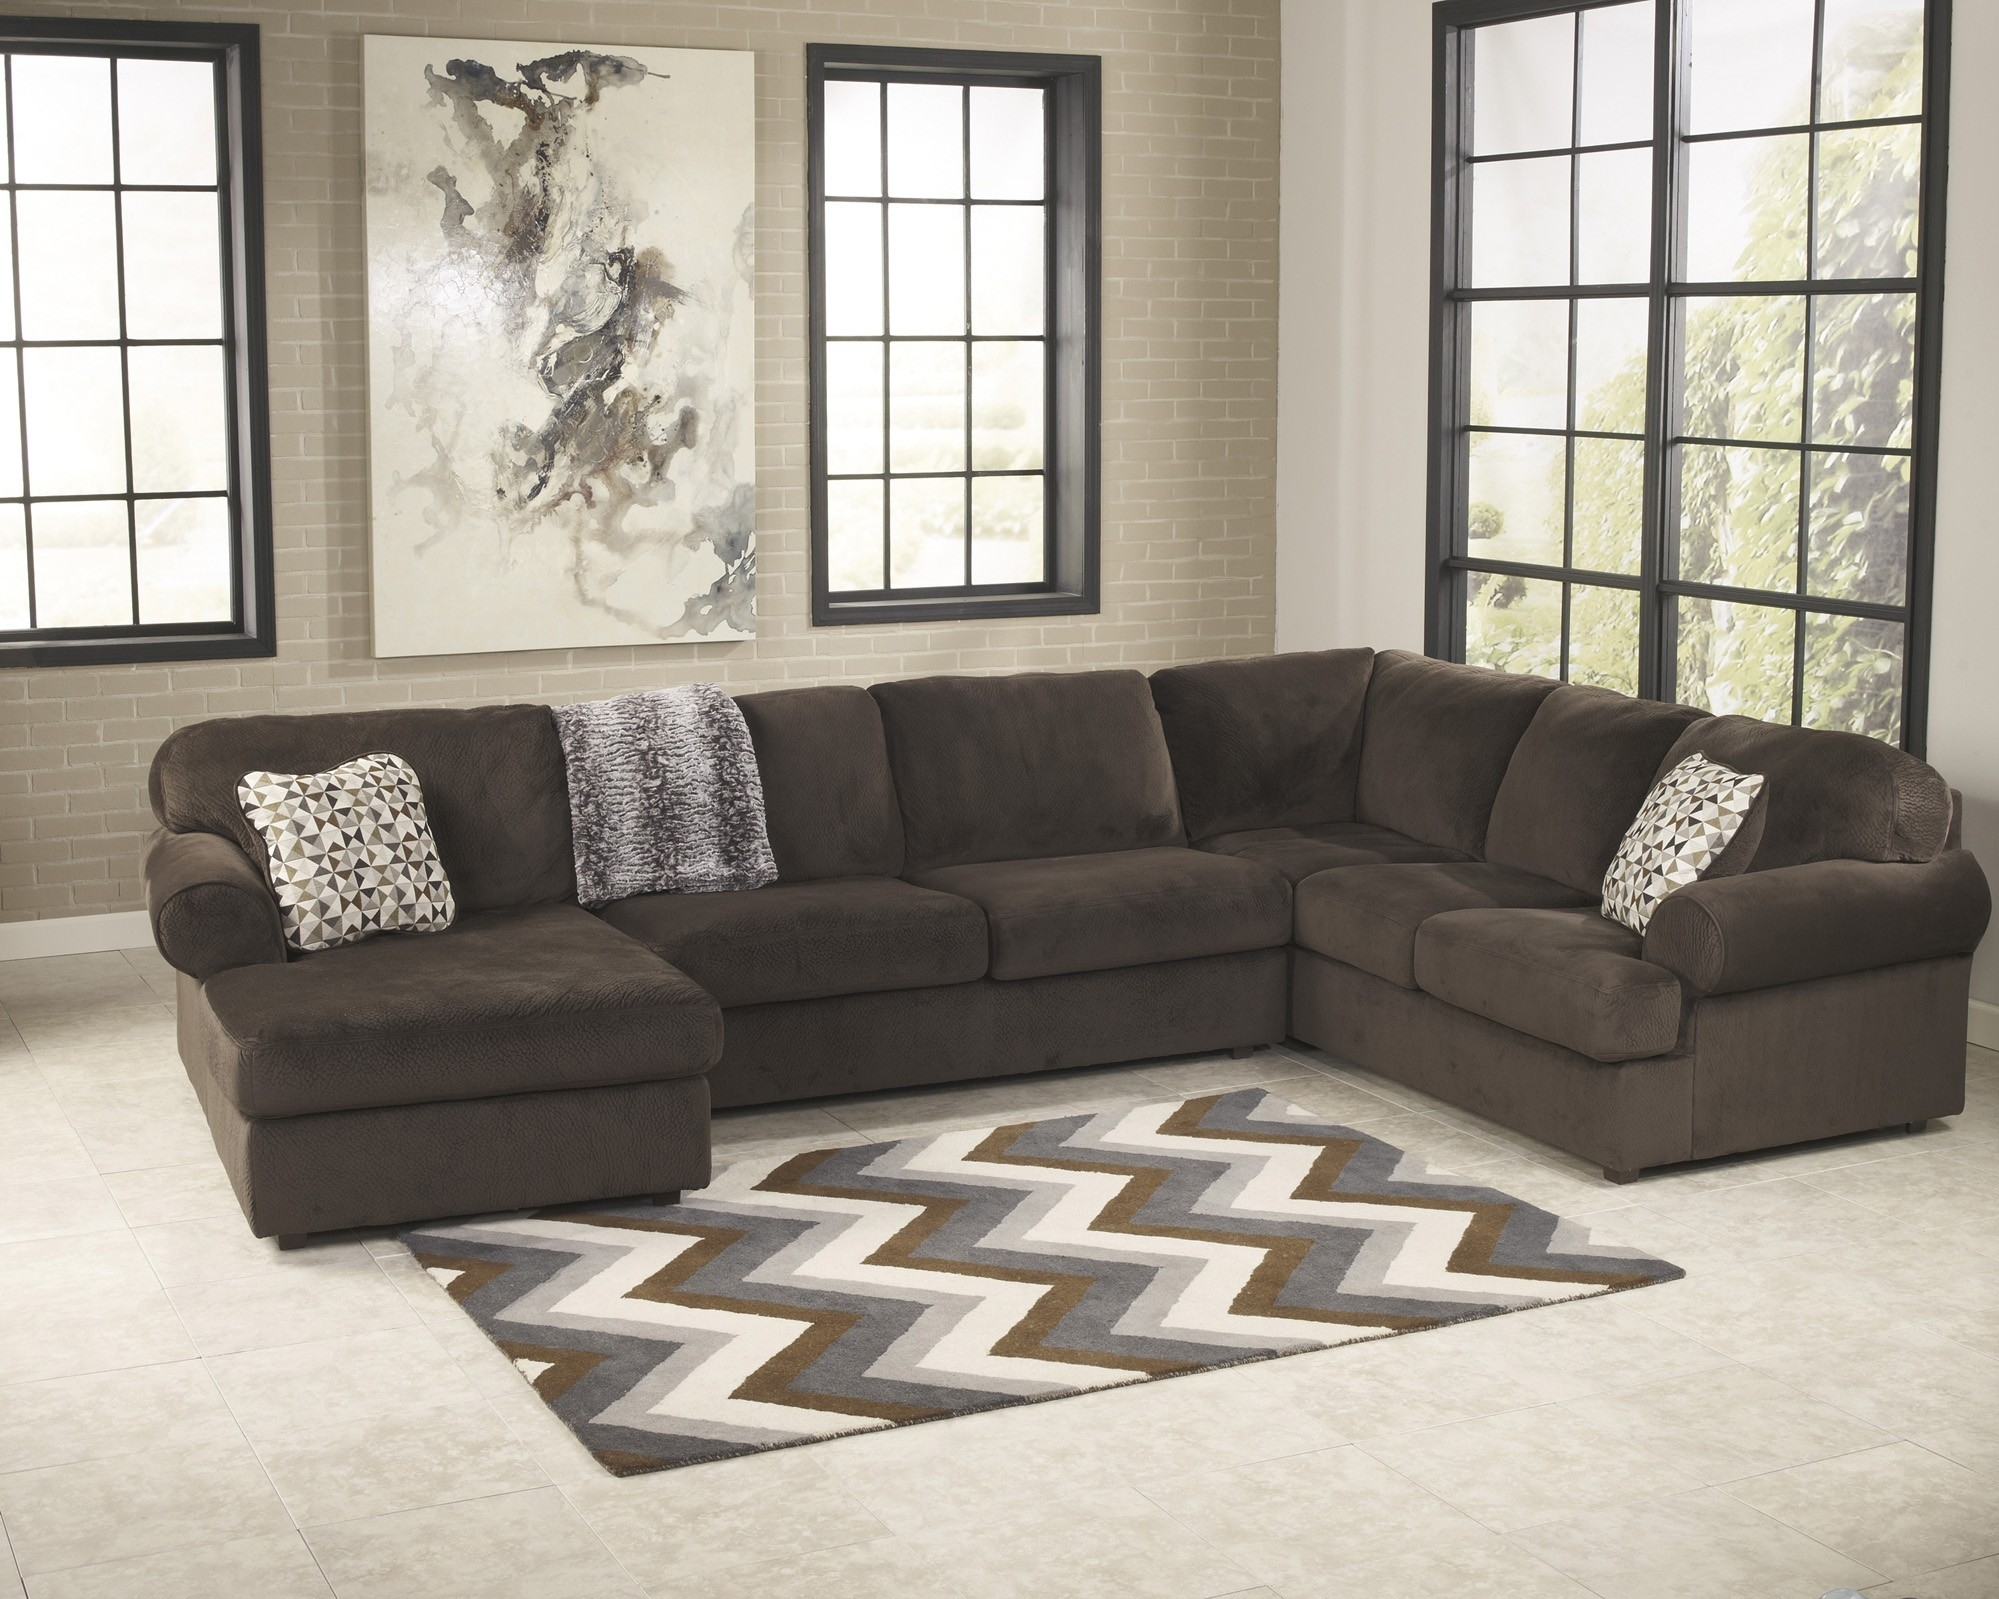 Jessa Place Chocolate 3 Piece Sectional Sofa For $ (Image 2 of 10)